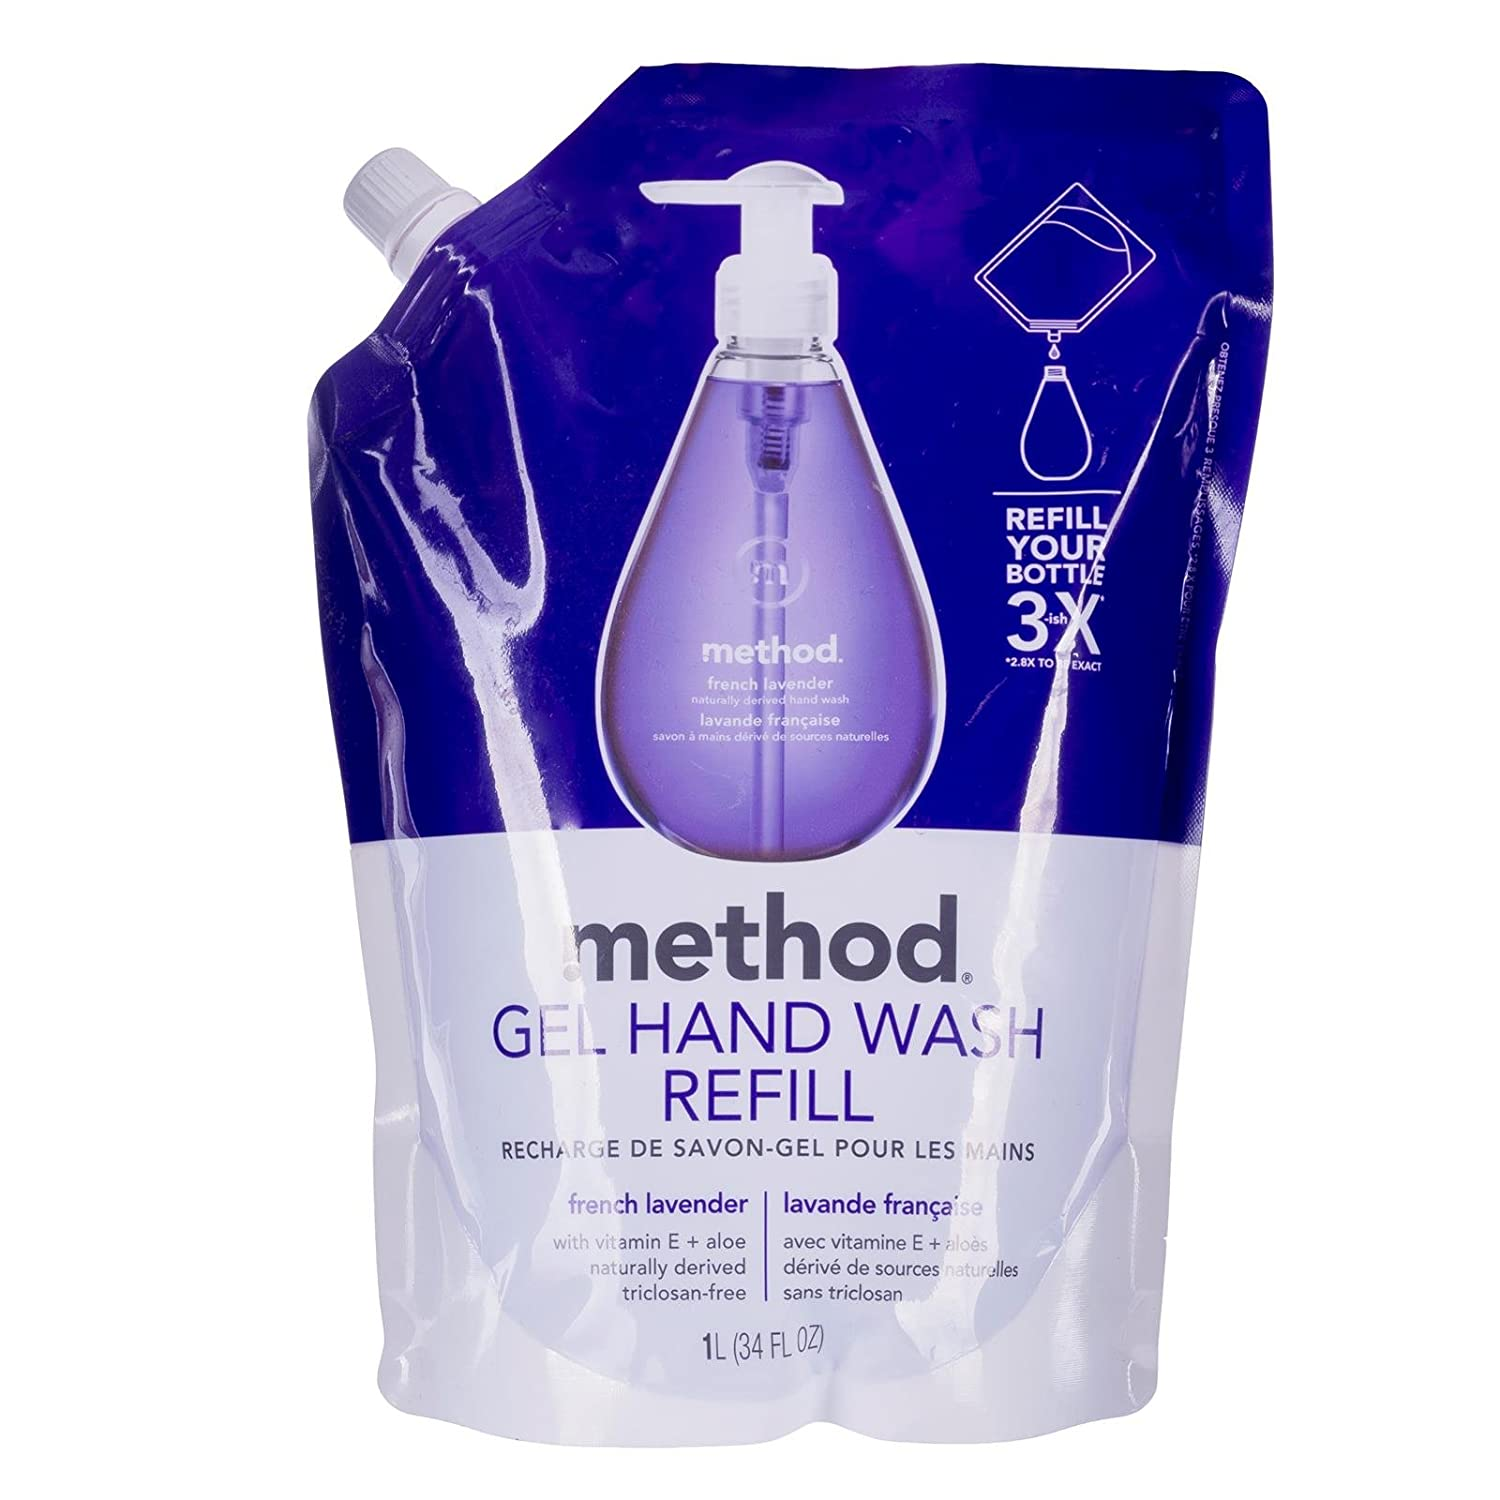 amazoncom method gel hand wash refill pouch french lavender 34 oz health u0026 personal care - French Lavender